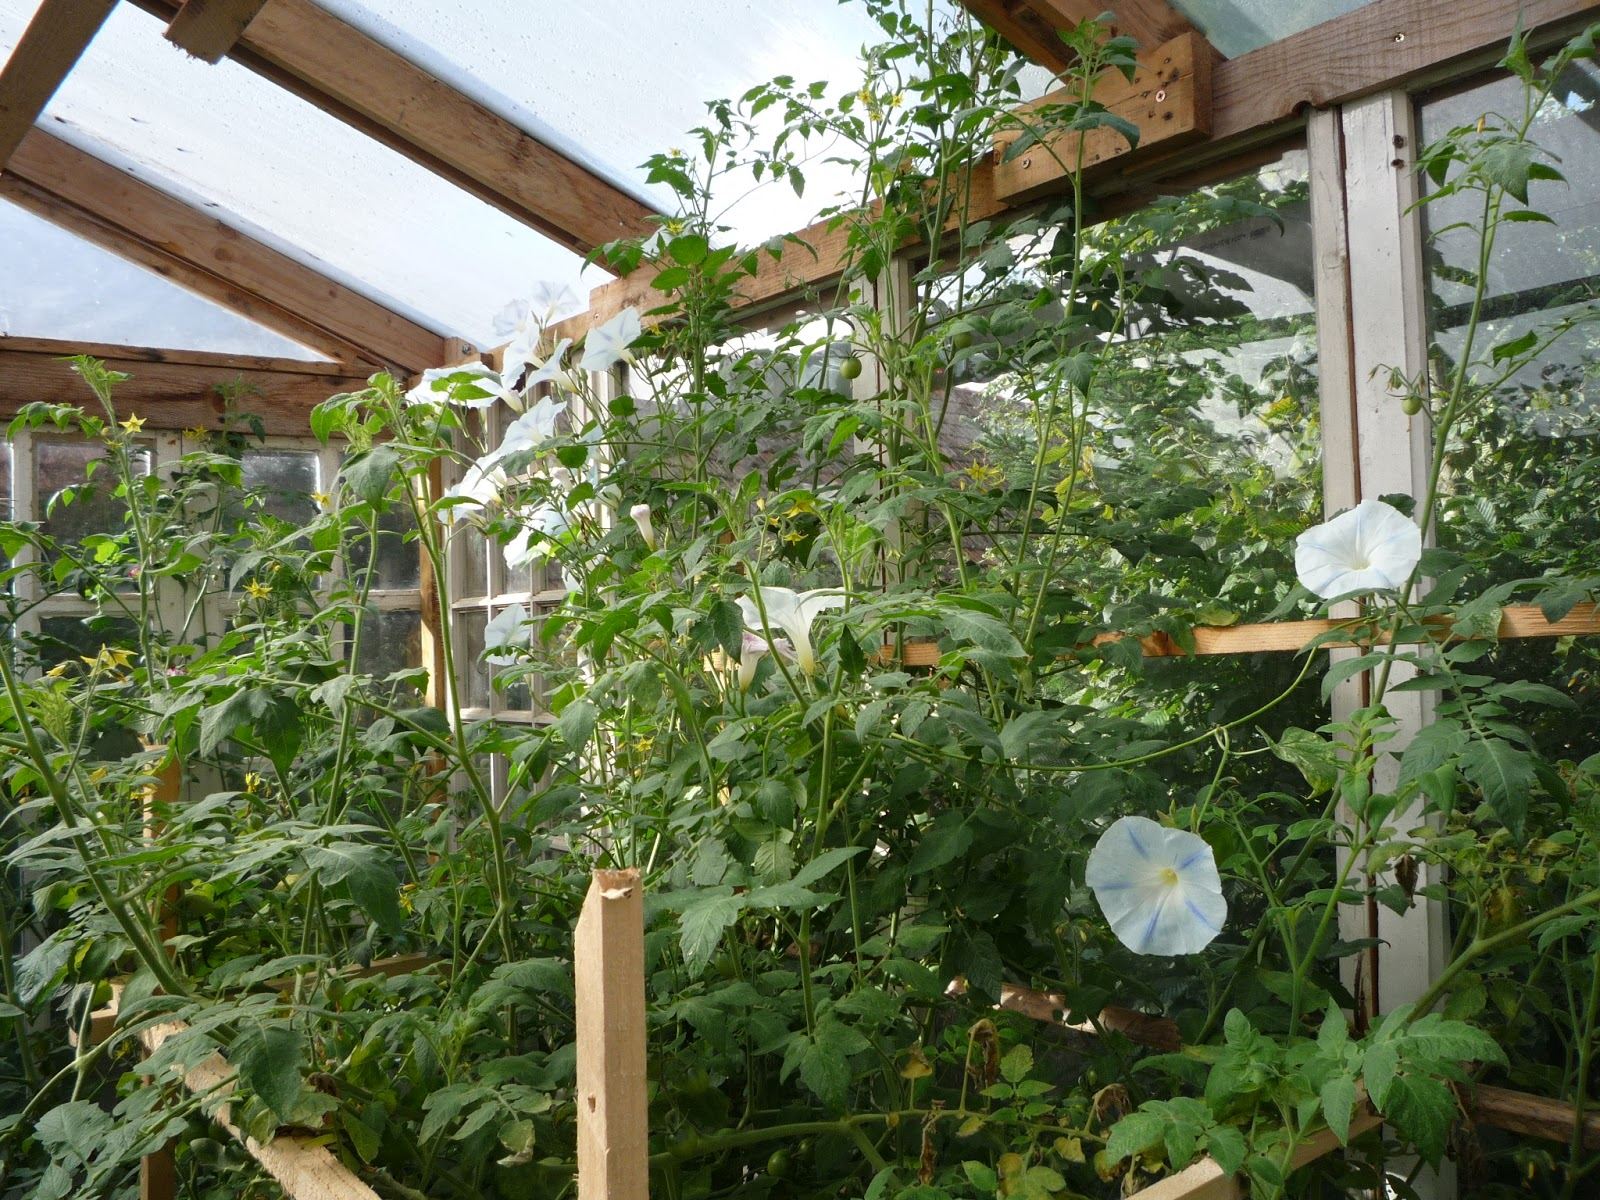 Companion planting in a glass greenhouse made from old windows